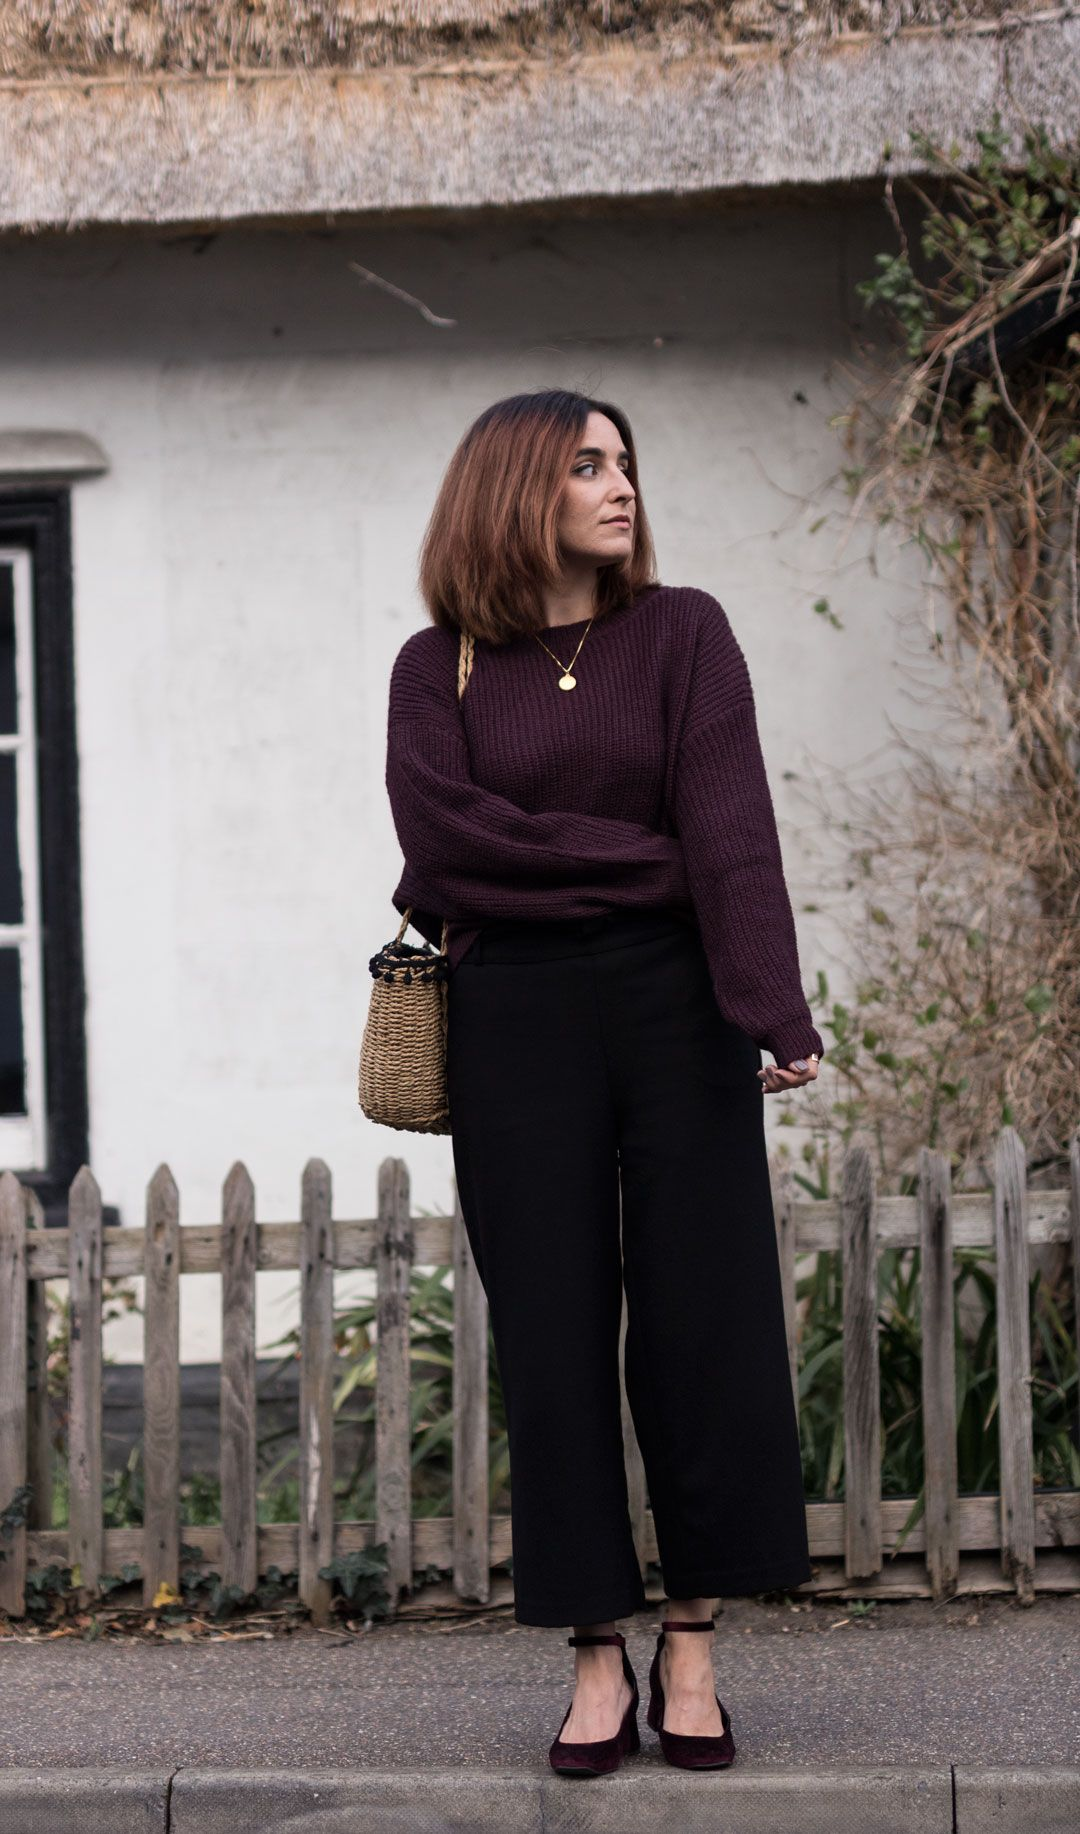 How to make the most of your summer wardrobe in autumn | #Fallfashion | #culottes | How to style culottes in winter | #effortlesschic | #raffiabag | #basketbag | #netbag | #meshbag | #balloonsleeves | #autumnoutfit | #outfitinspiration | She talks Glam | Saida Antolin | #summerpiecesforfall | How to transition your wardrobe into fall | #falloutfit | #classiclook | #chiclook | Cambridge Fashion | #minimalchic | #blackculottes | #ZARA | #anklestrapheels| #widelegtrousers